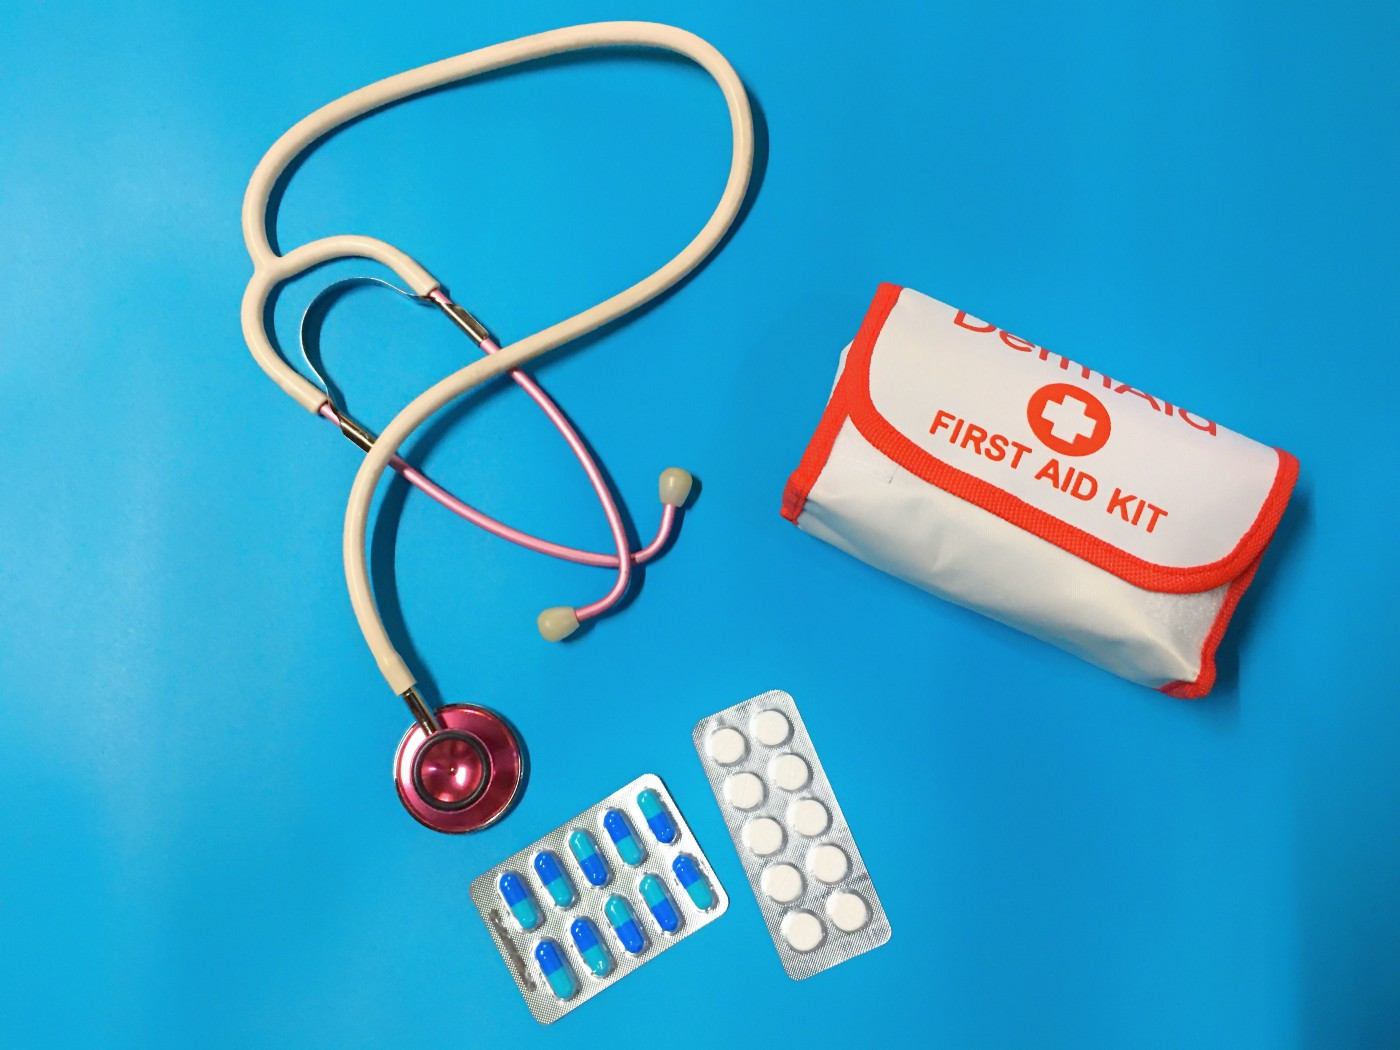 A stethoscope, blood pressure cuff, and two blister packs of pills.